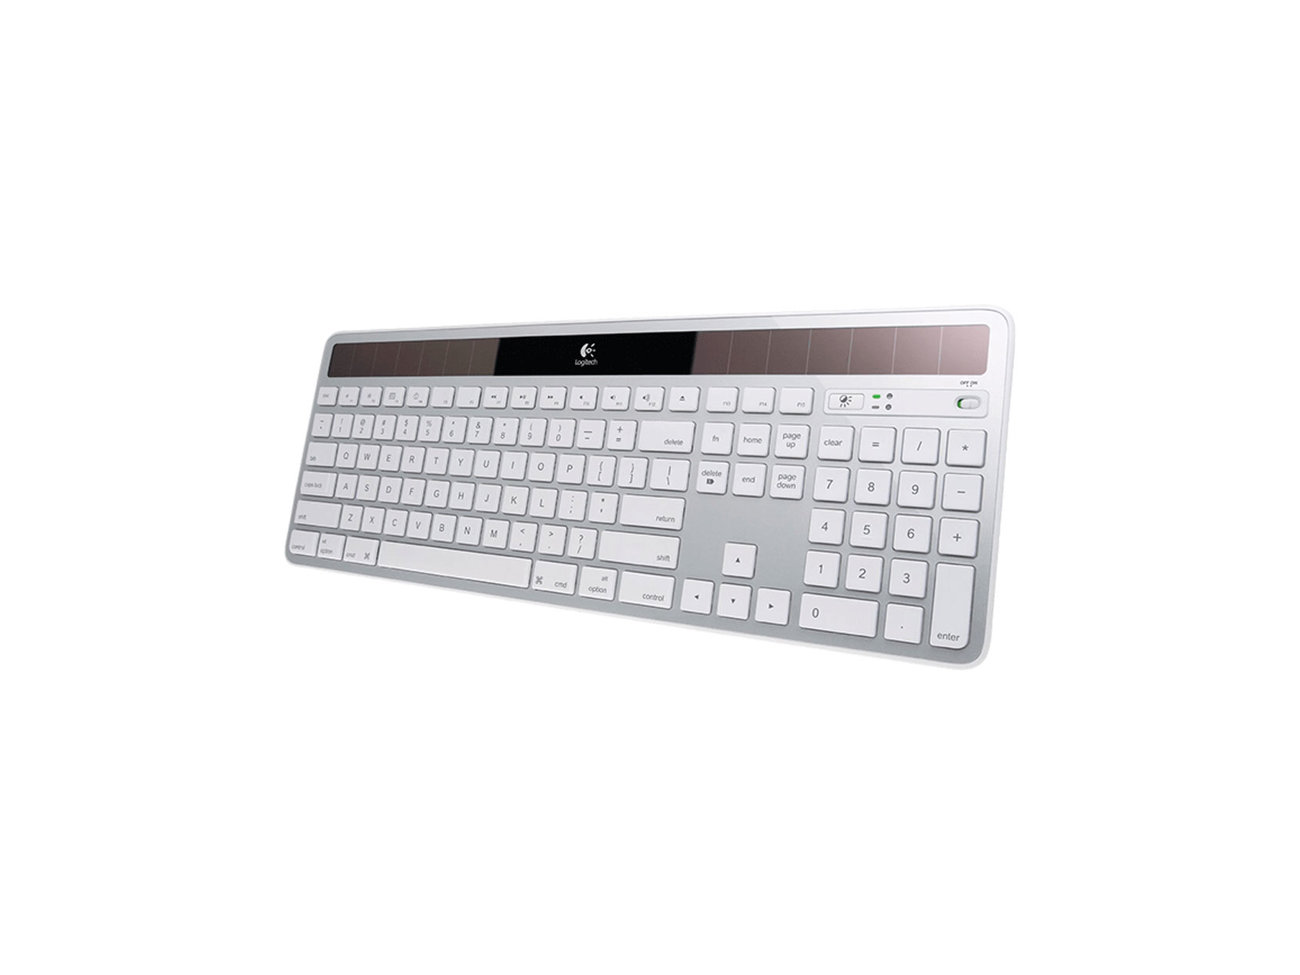 Tech-solar-power-keyboard-GG1115.jpg